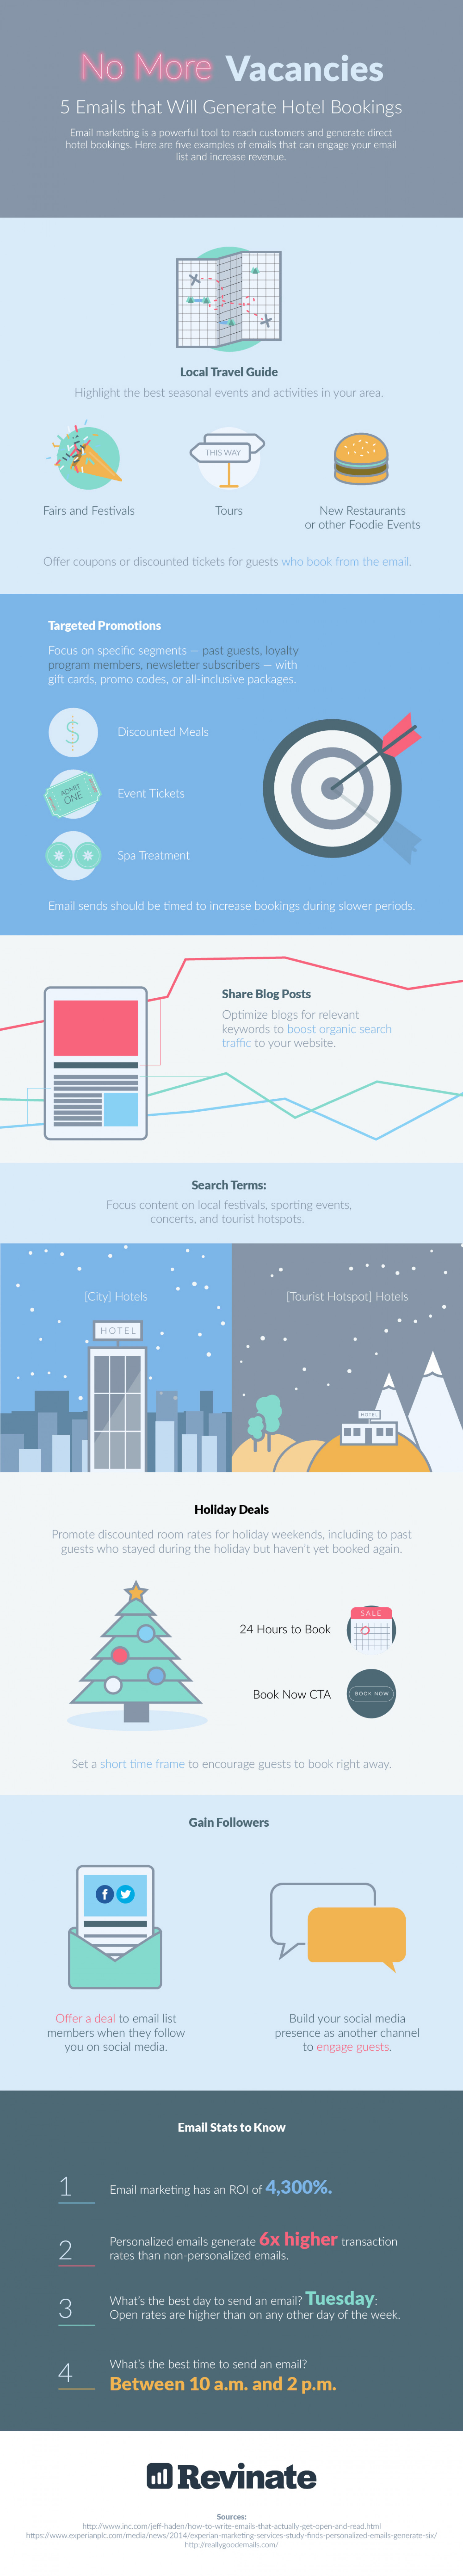 [Infographic] 5 Emails That Will Generate Hotel Bookings Infographic